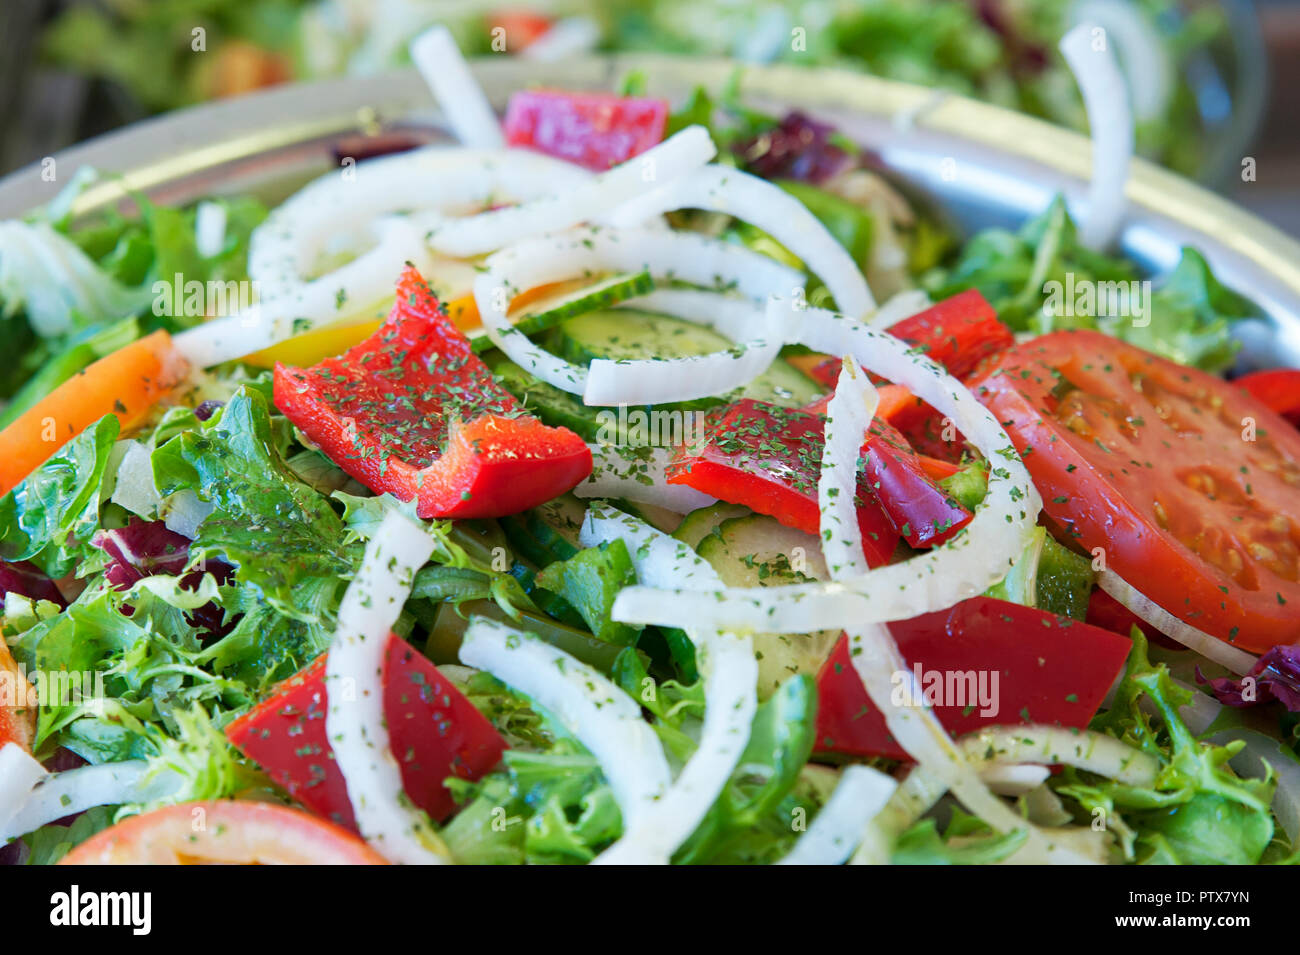 Fresh and healthy mixed salad with lettuce, red peppers, tomatoes and onions, as a starter, side dish or first course for a vegetarian or vegan diet Stock Photo